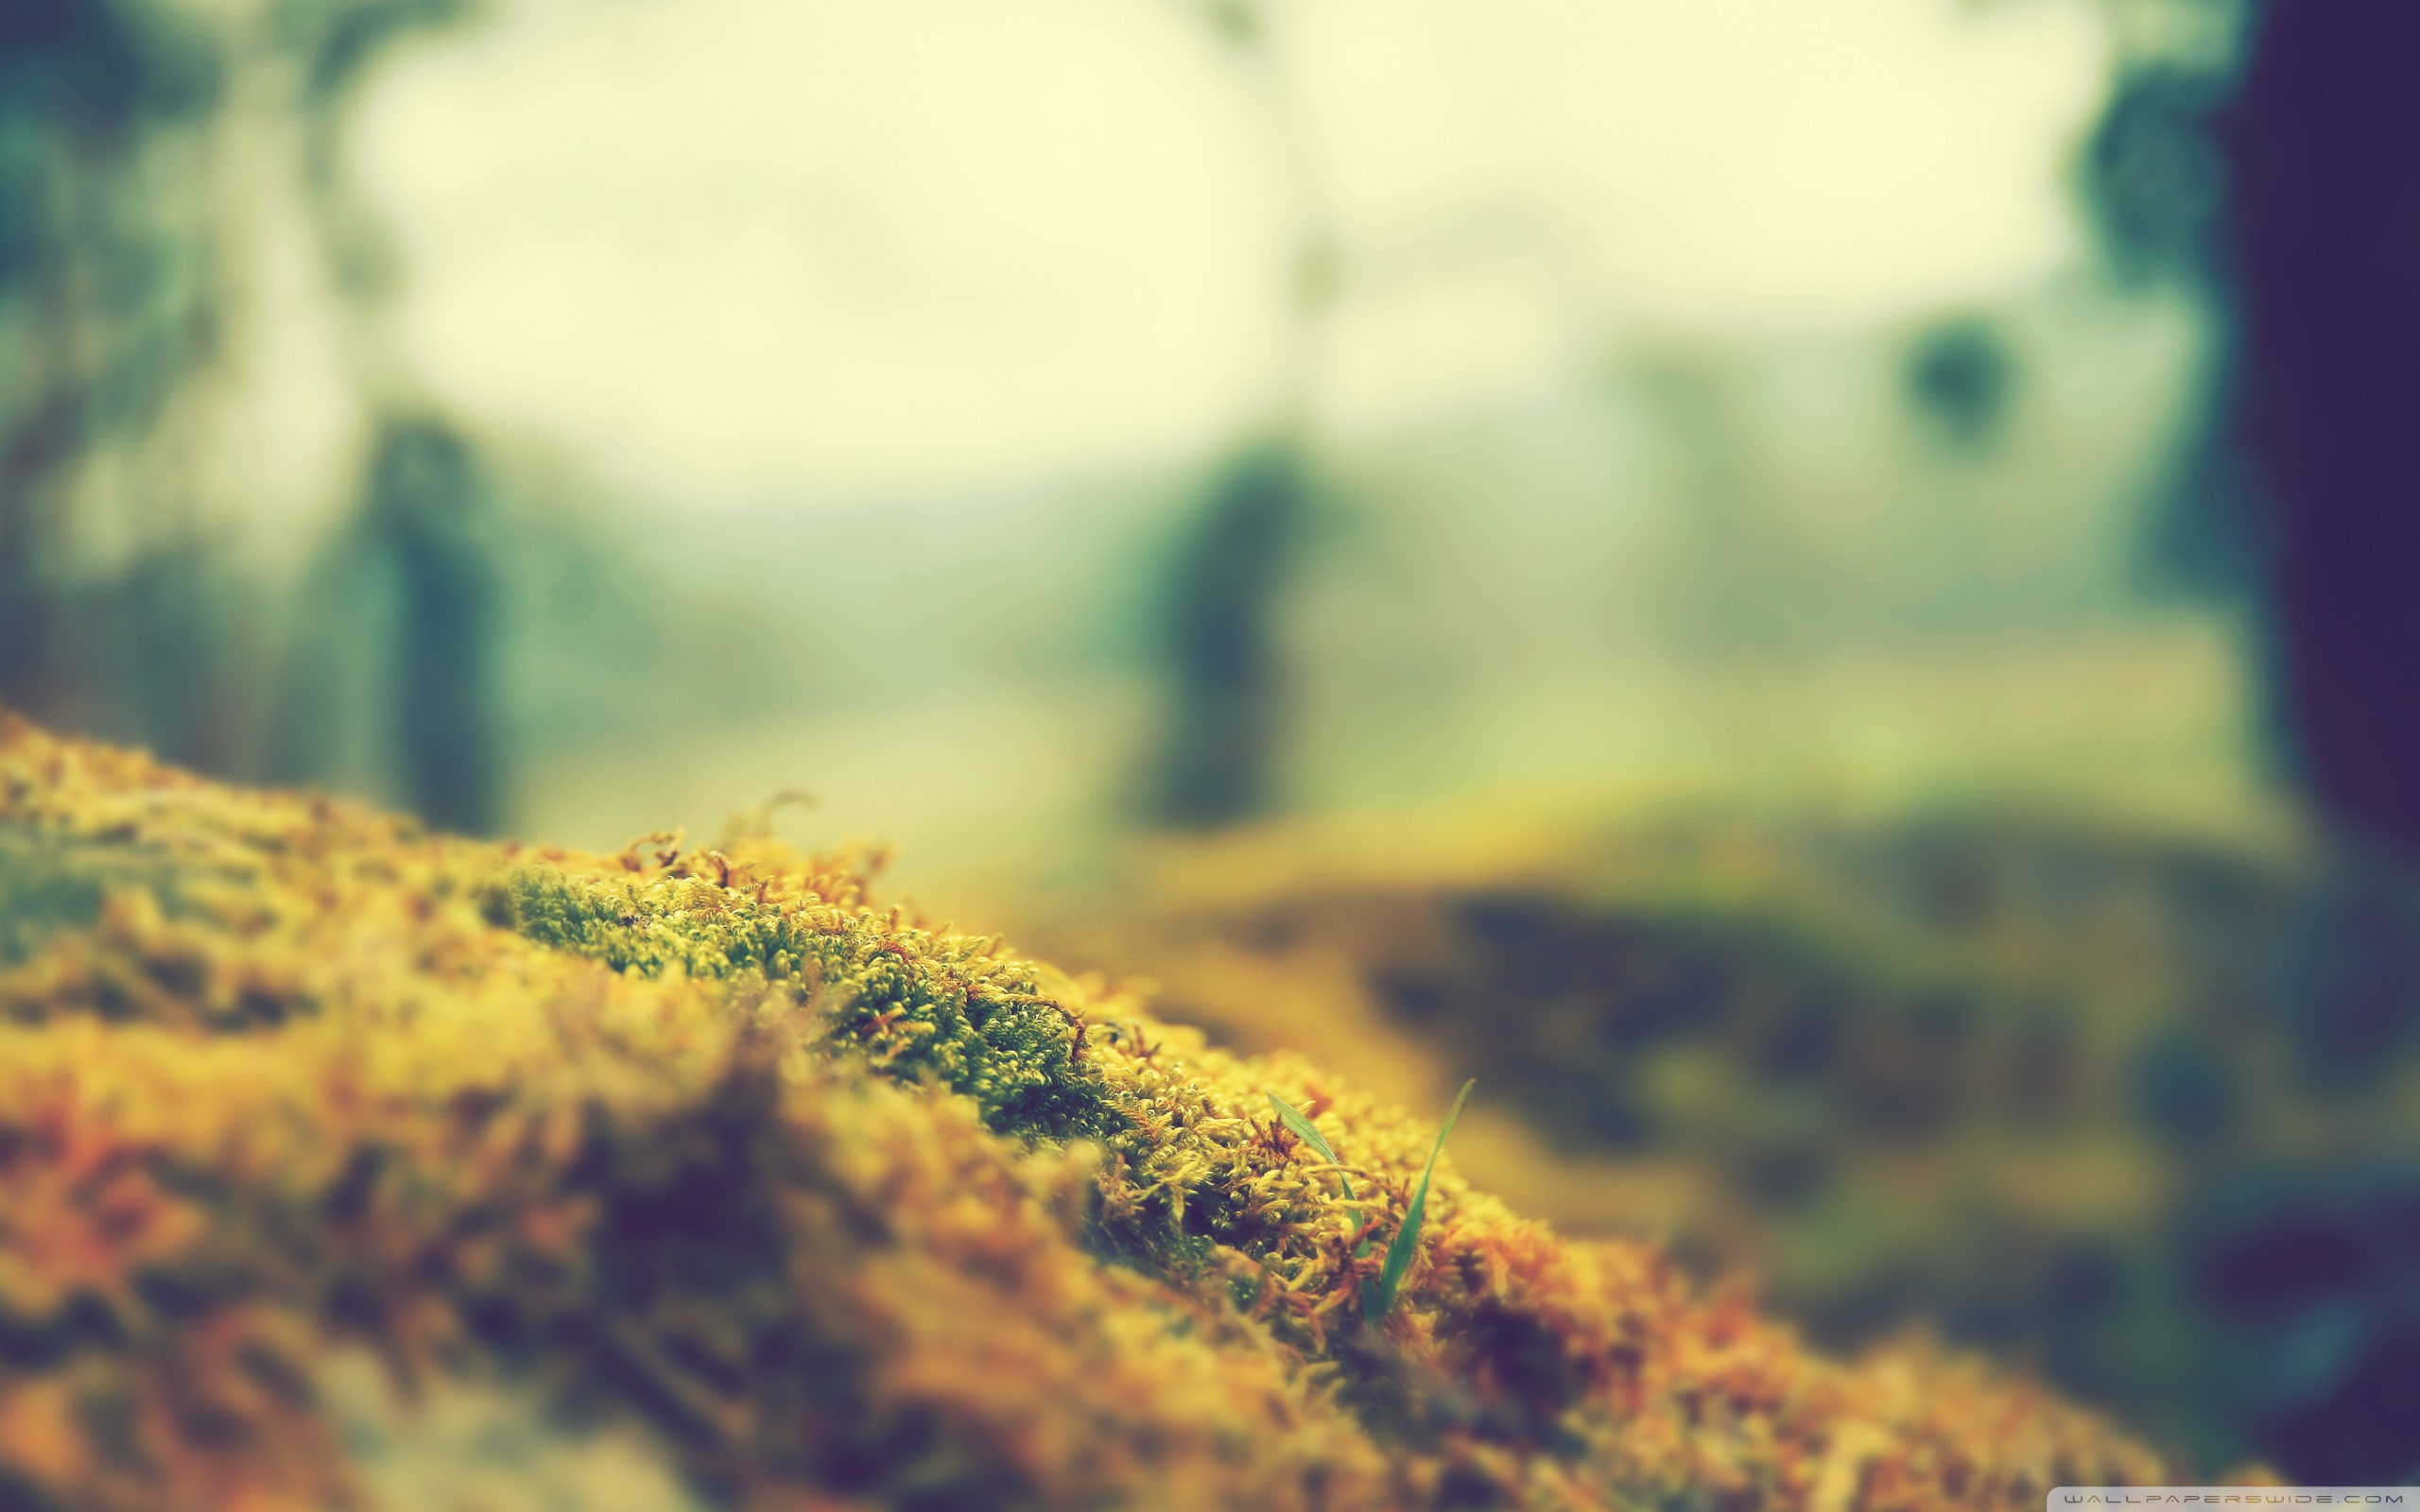 Bokeh Res: 2560x1600 / Size:558kb. Views: 39576. More Nature wallpapers